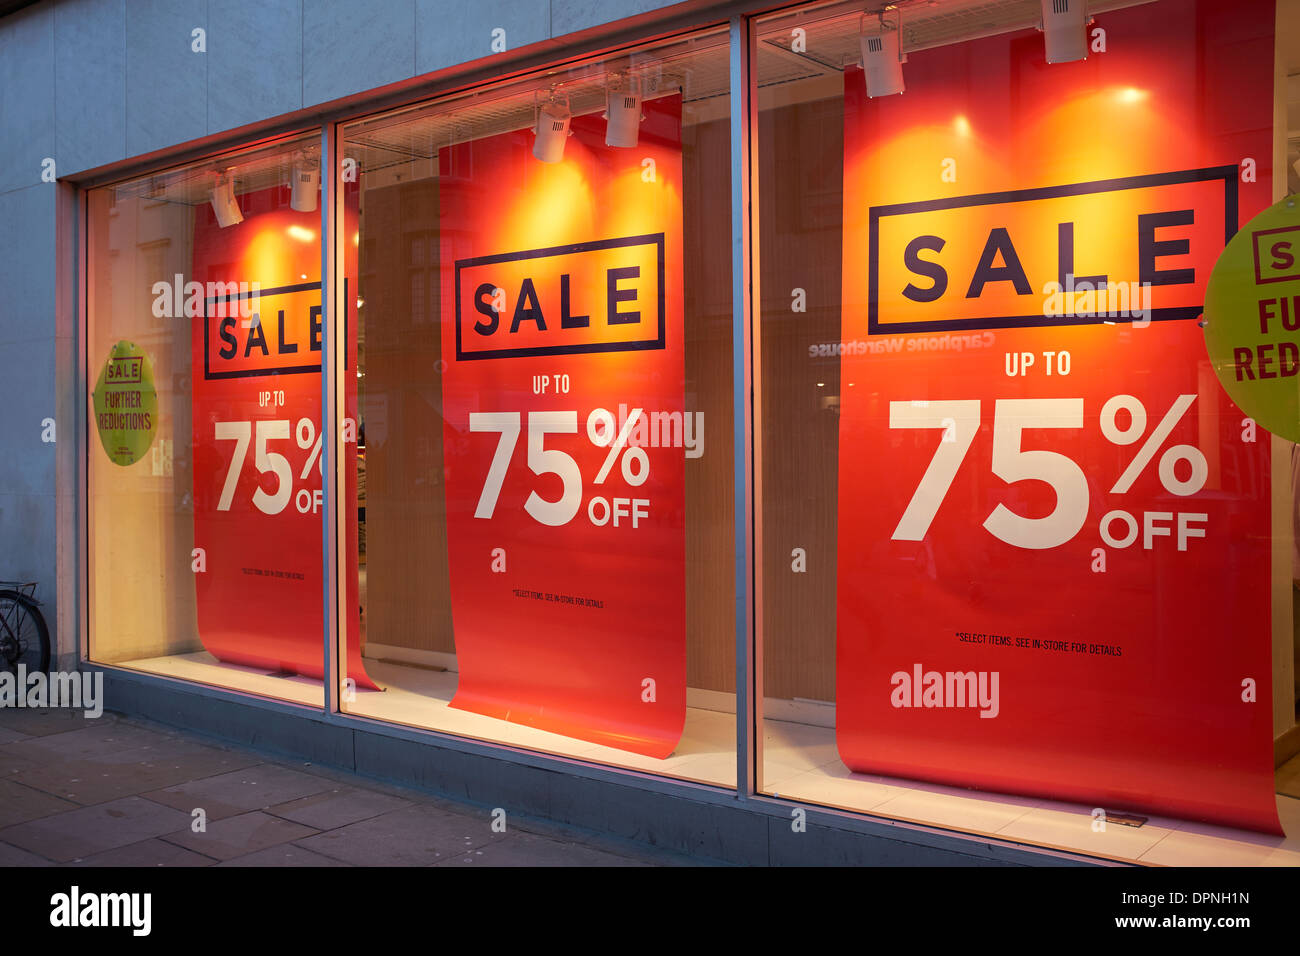 Store Banne Promotion Sale Up To 75 Off Banners In A Shop Window Stock Photo